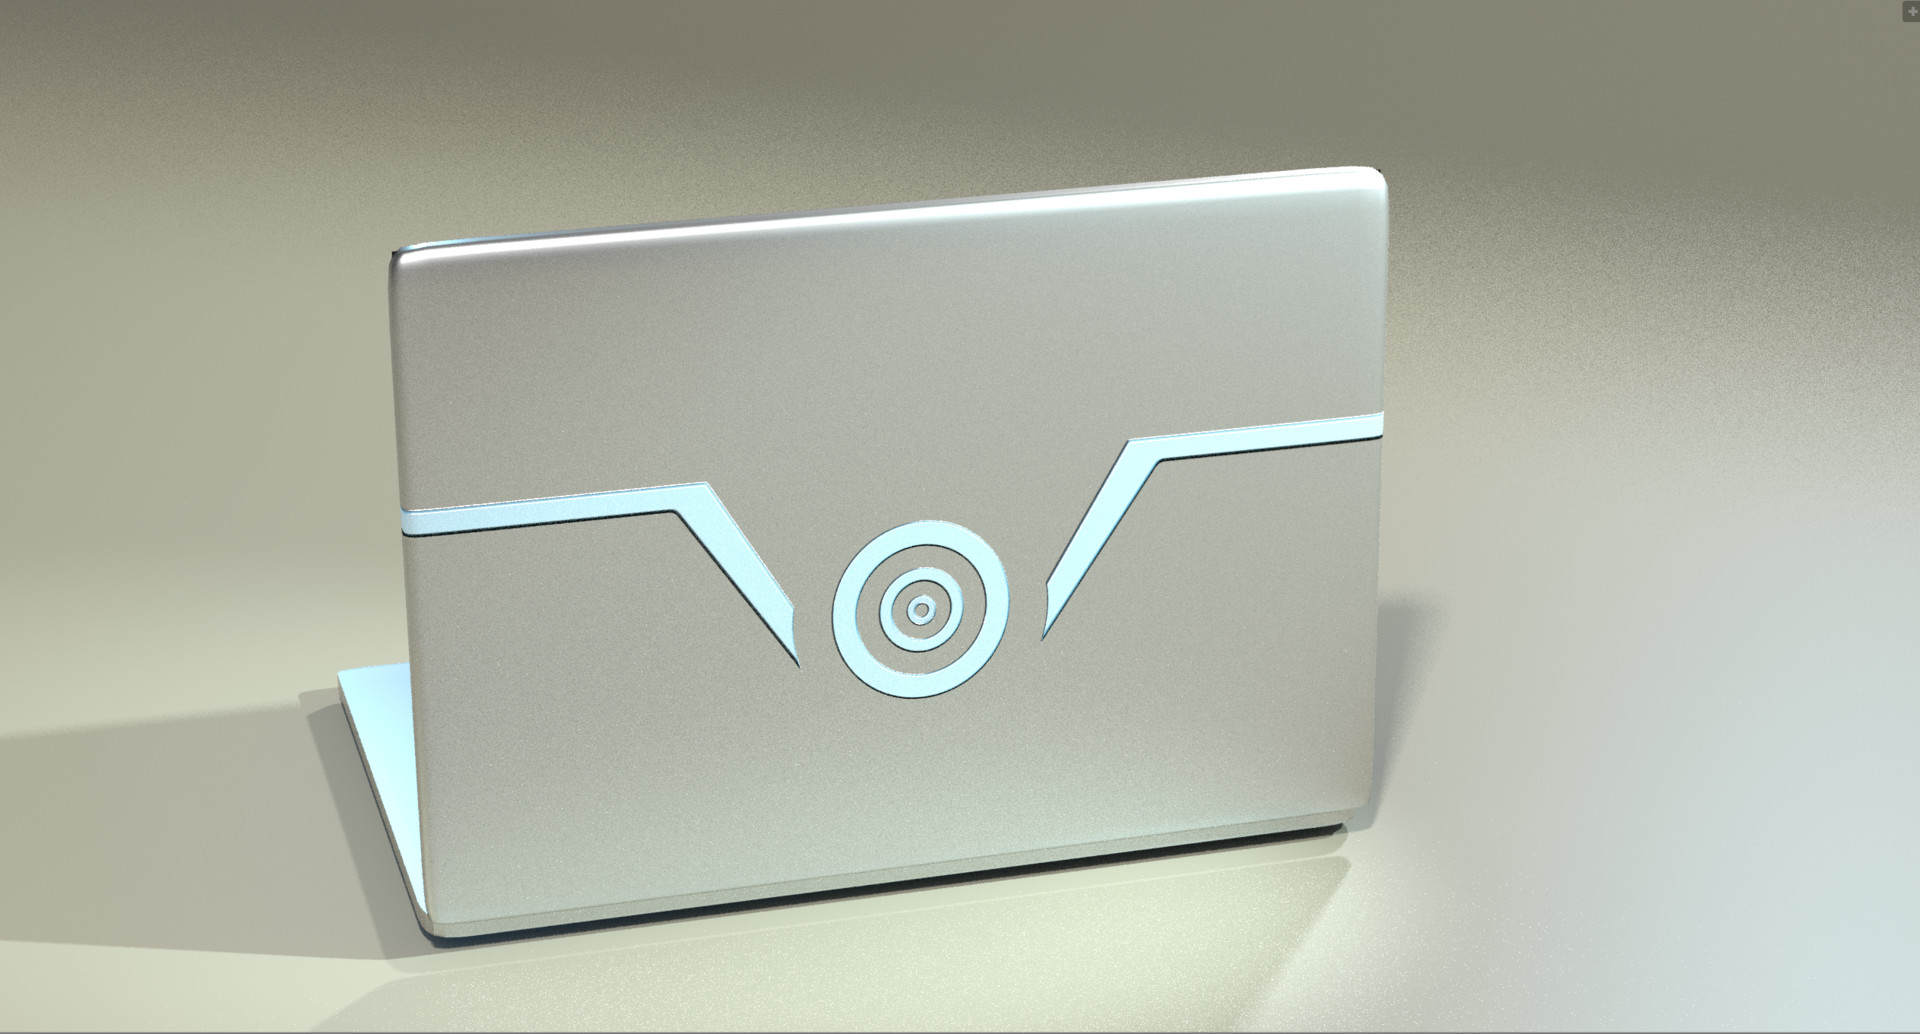 Original Laptop - w/ original Logo (Vortex Solutions)